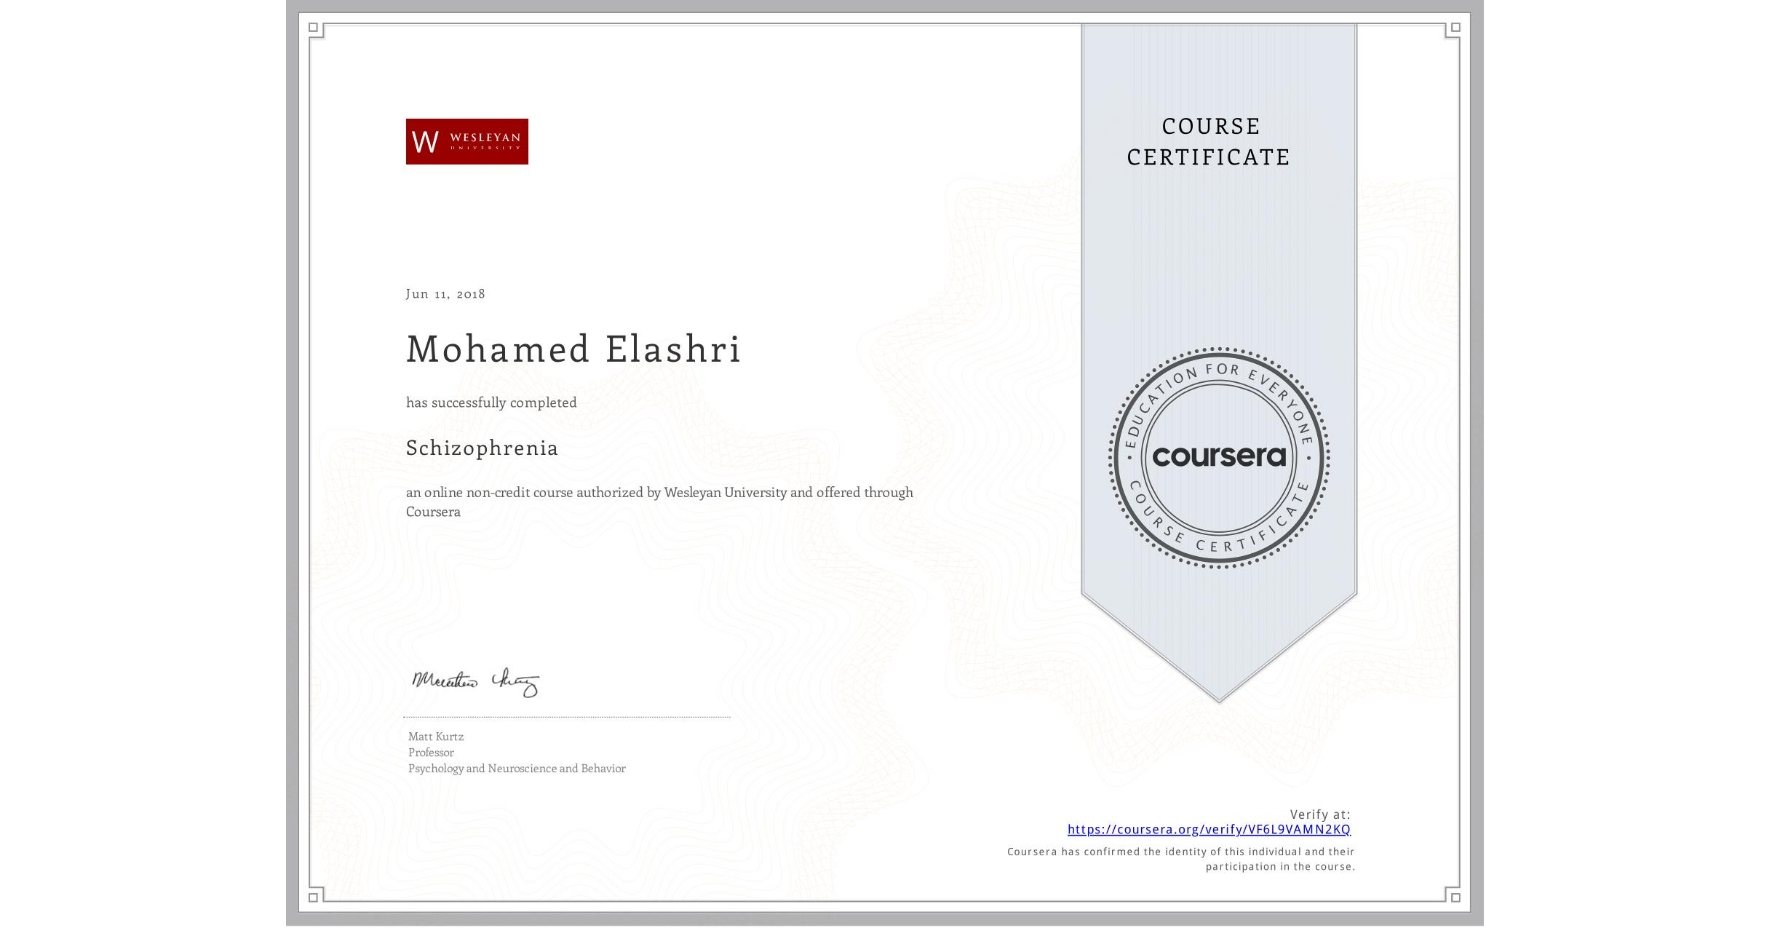 View certificate for Mohamed Elashri, Schizophrenia, an online non-credit course authorized by Wesleyan University and offered through Coursera